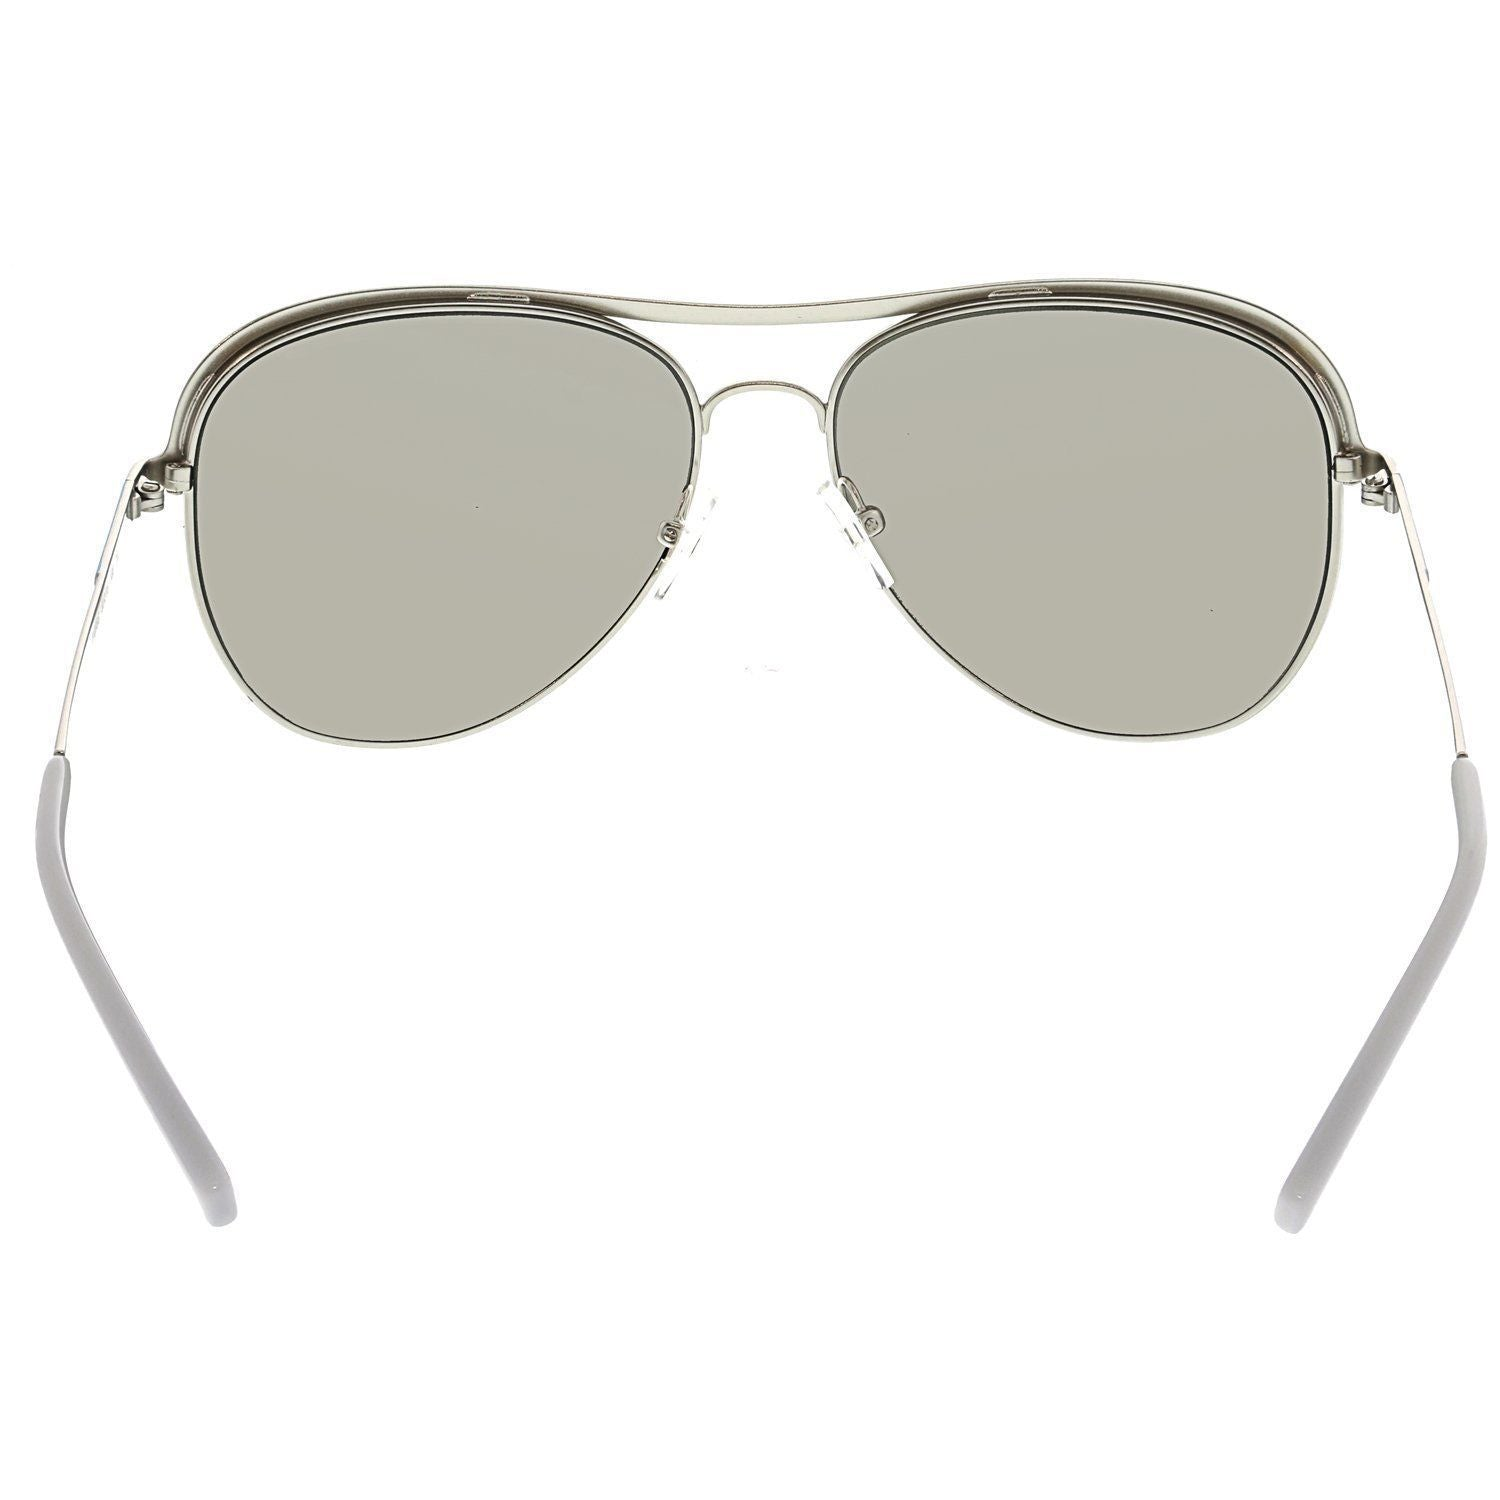 Michael Kors Women's Vivianna Aviator Sunglasses (MK1012 58mm) - Gold or Silver